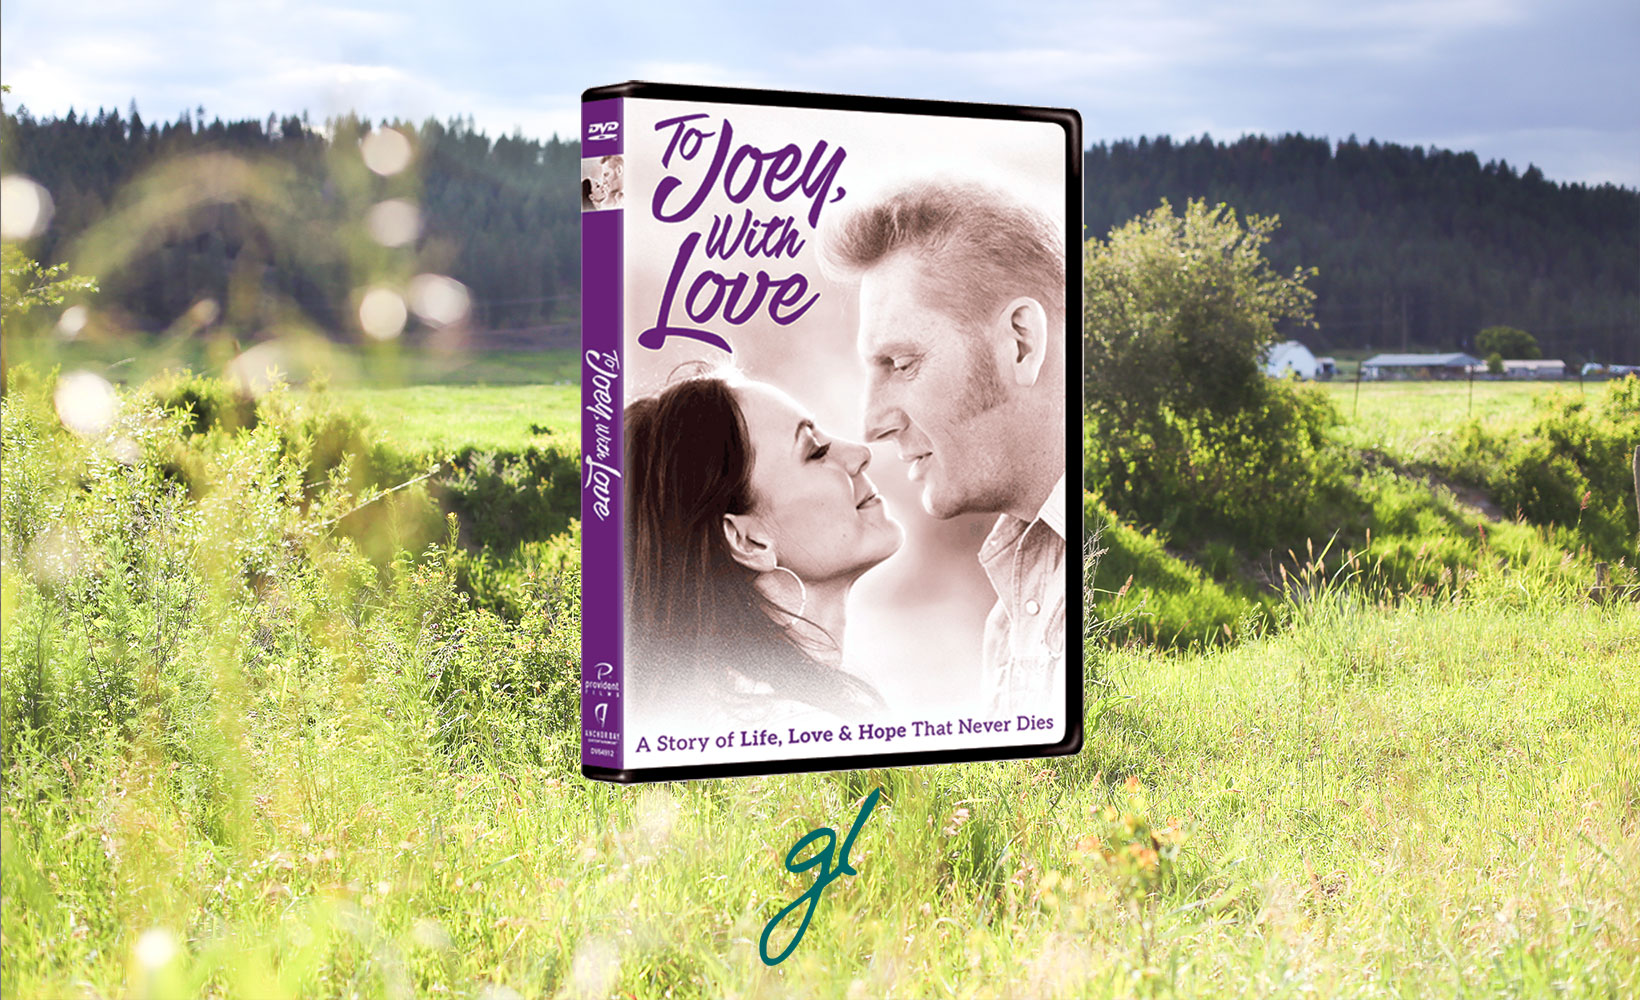 Don't Take the Girl (the love story of Joey + Rory)